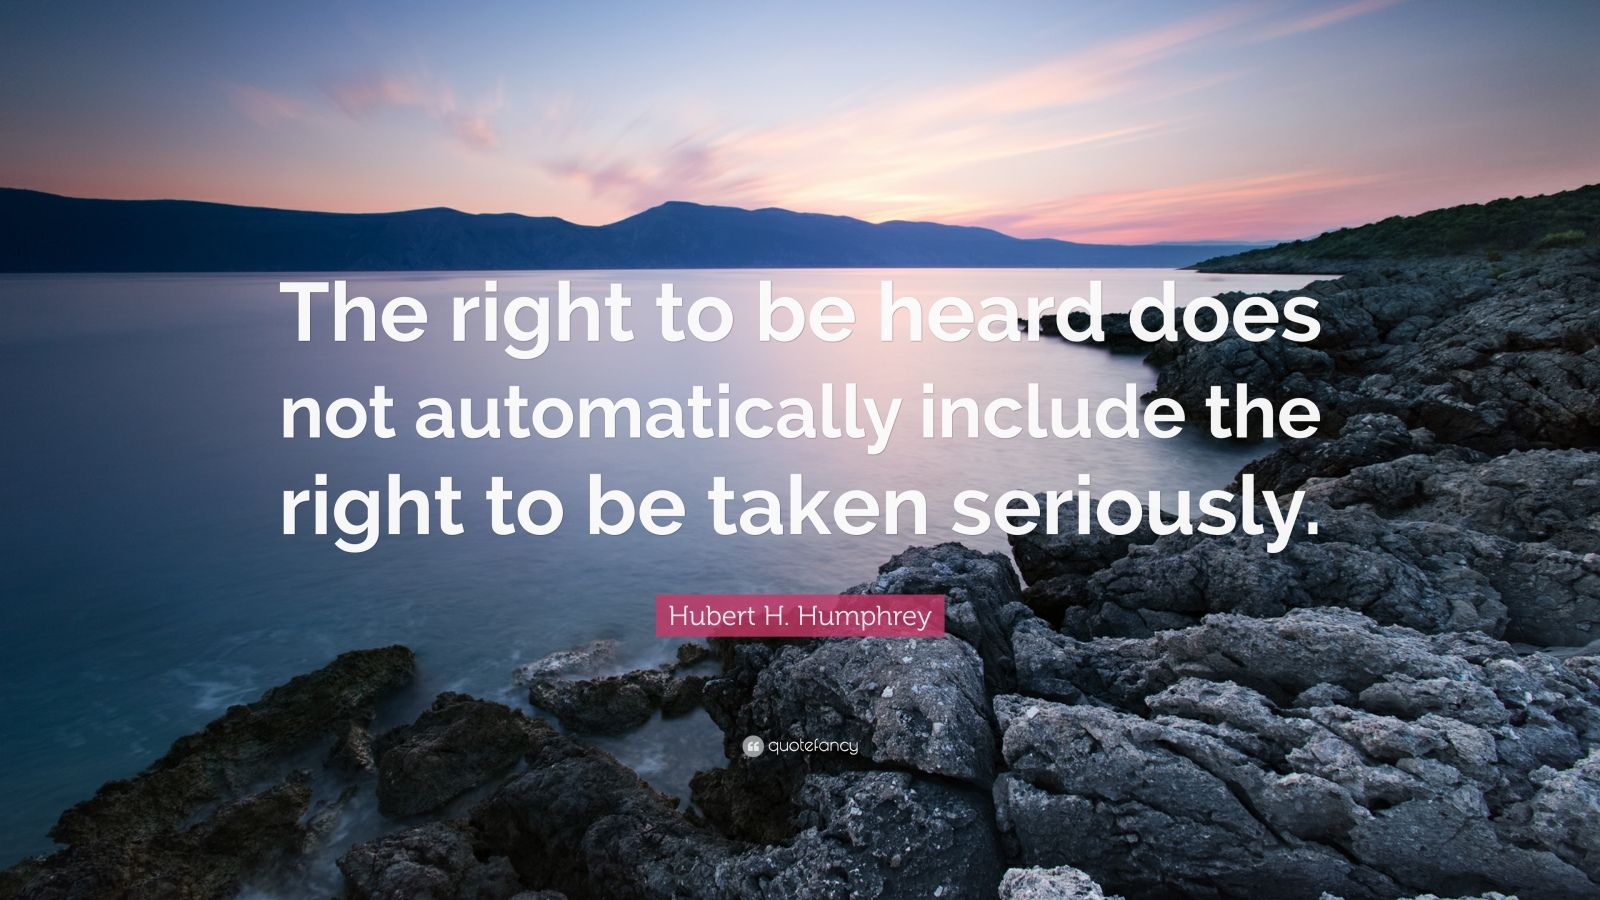 """Hubert H. Humphrey Quote: """"The right to be heard does not automatically include the right to be taken seriously."""""""